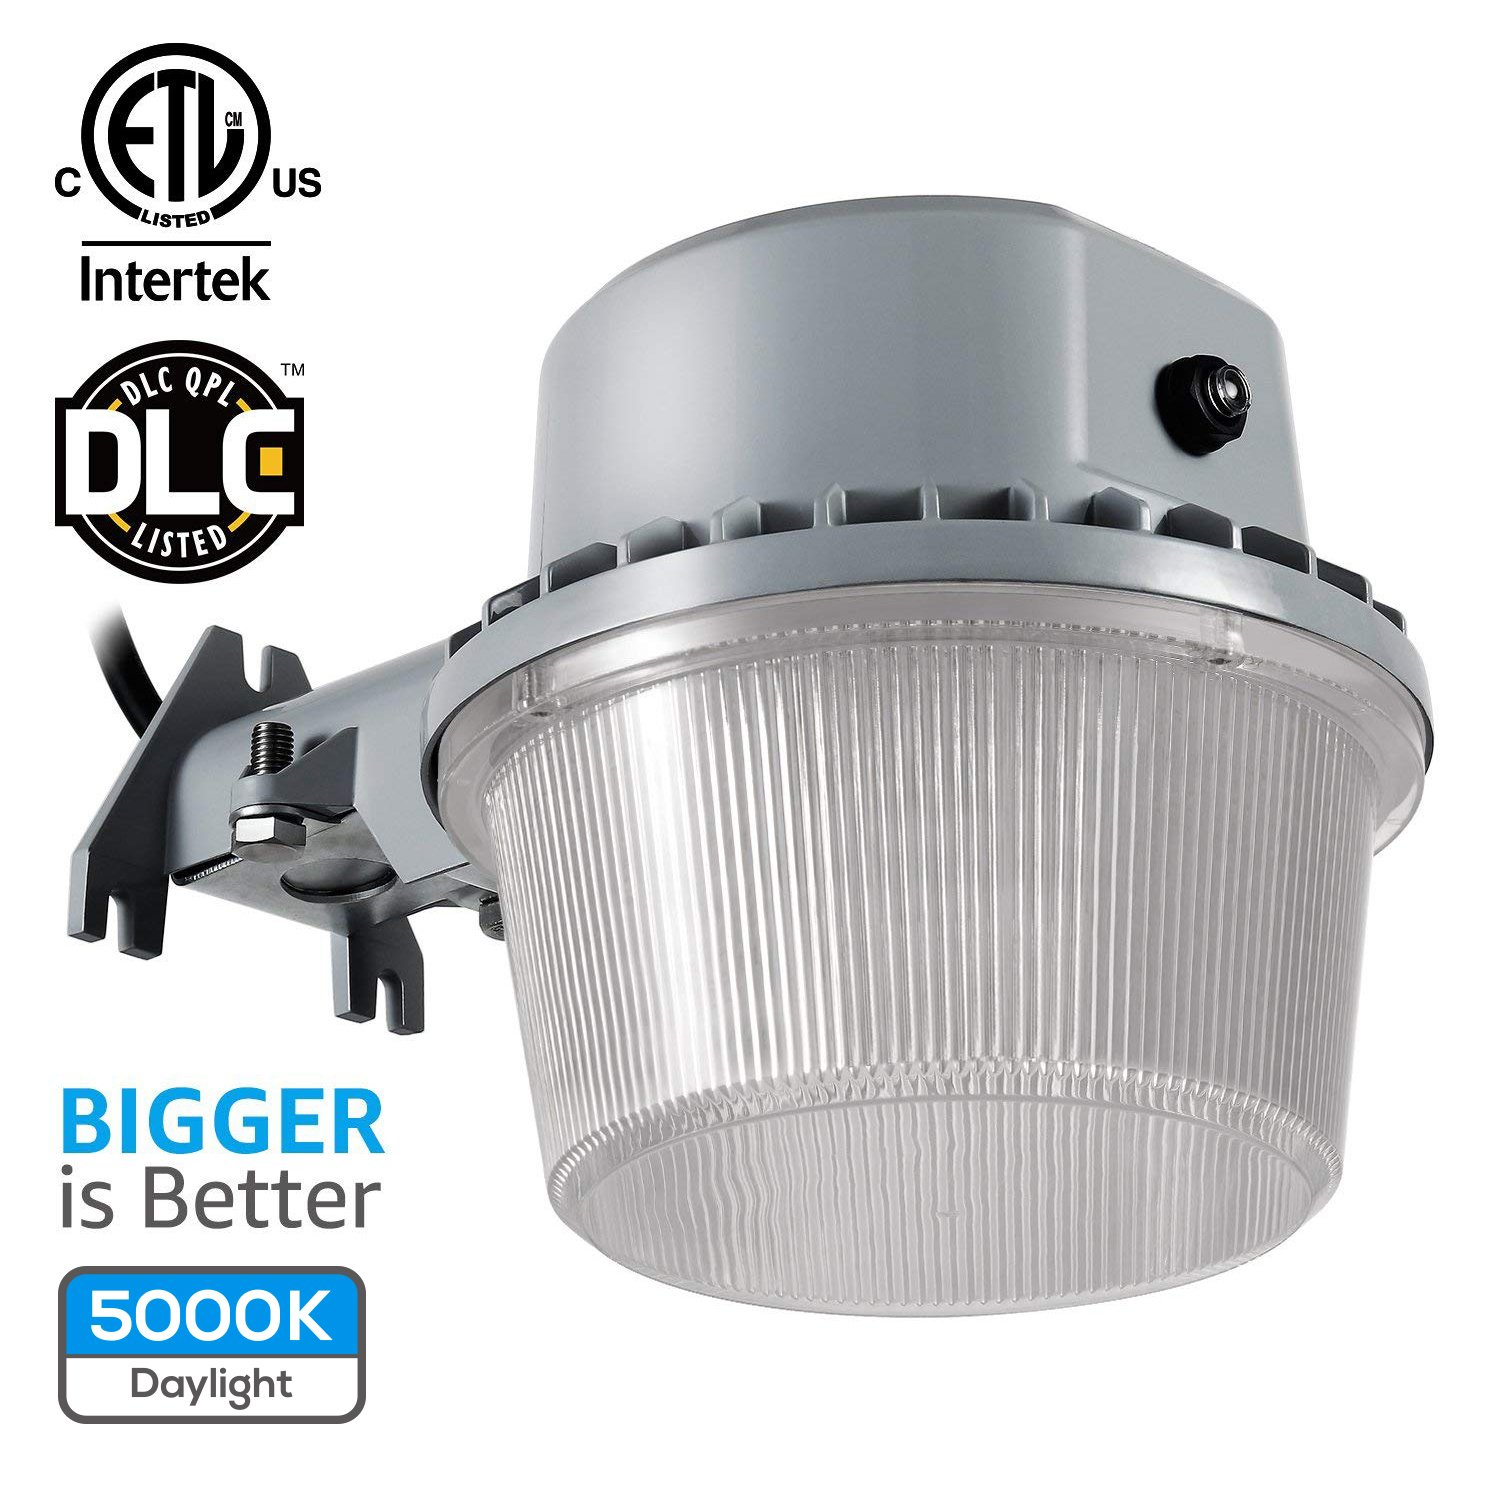 TORCHSTAR Dusk-to-Dawn LED Outdoor Barn Light (Photocell Included), 35W (250W Equiv.), 3500lm 5000K Floodlight, DLC & ETL-Listed Yard Light for Area Lighting, Wet Location, 5-Year Warranty, Silver